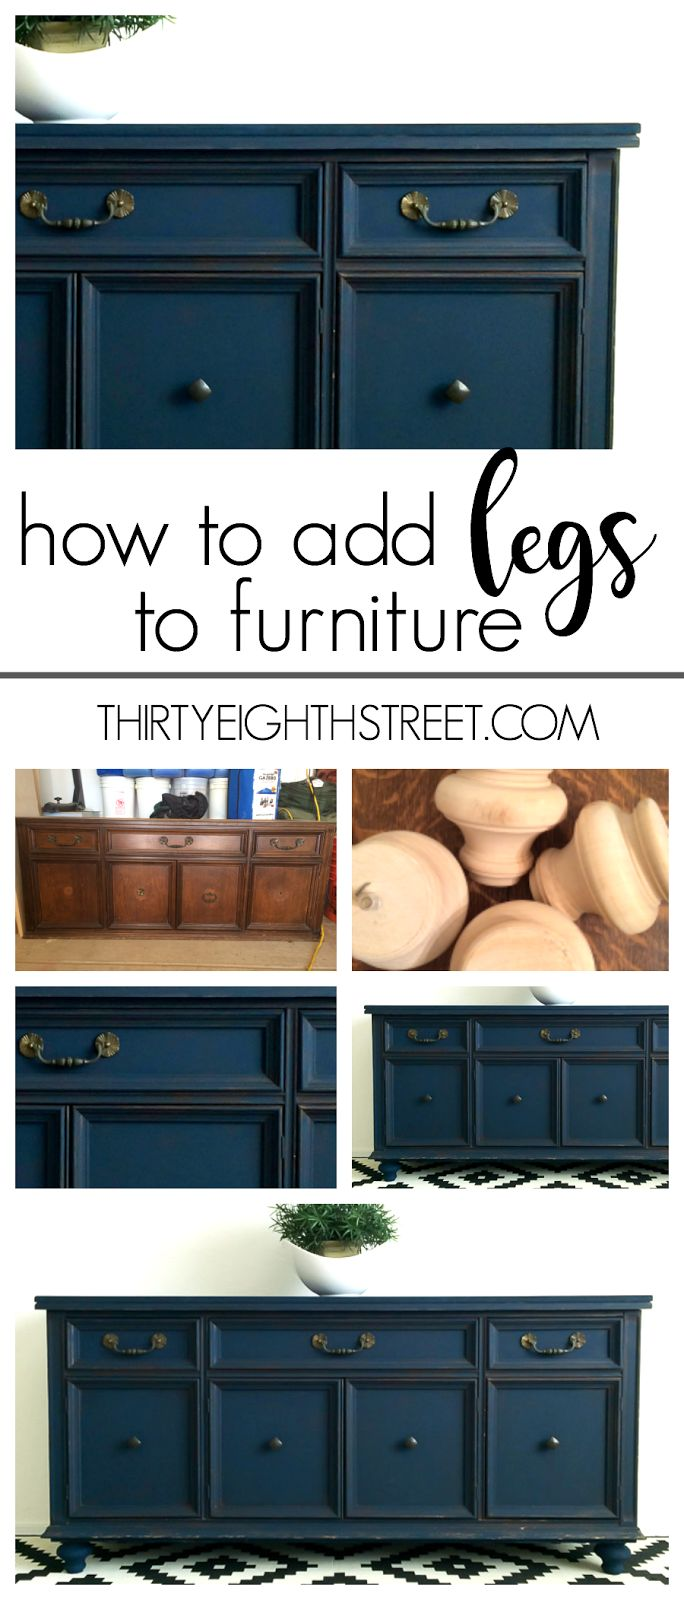 How To Add Legs To Furniture: Create the look of custom furniture by adding feet! A simple tutorial on how to add legs to furniture! | Thirty Eighth Street